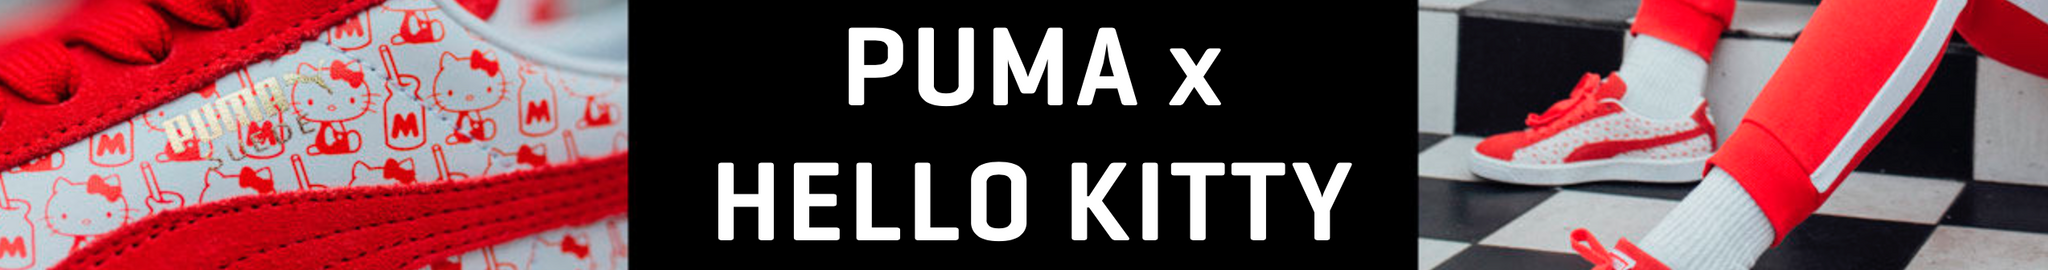 Buy Puma x Hello Kitty online